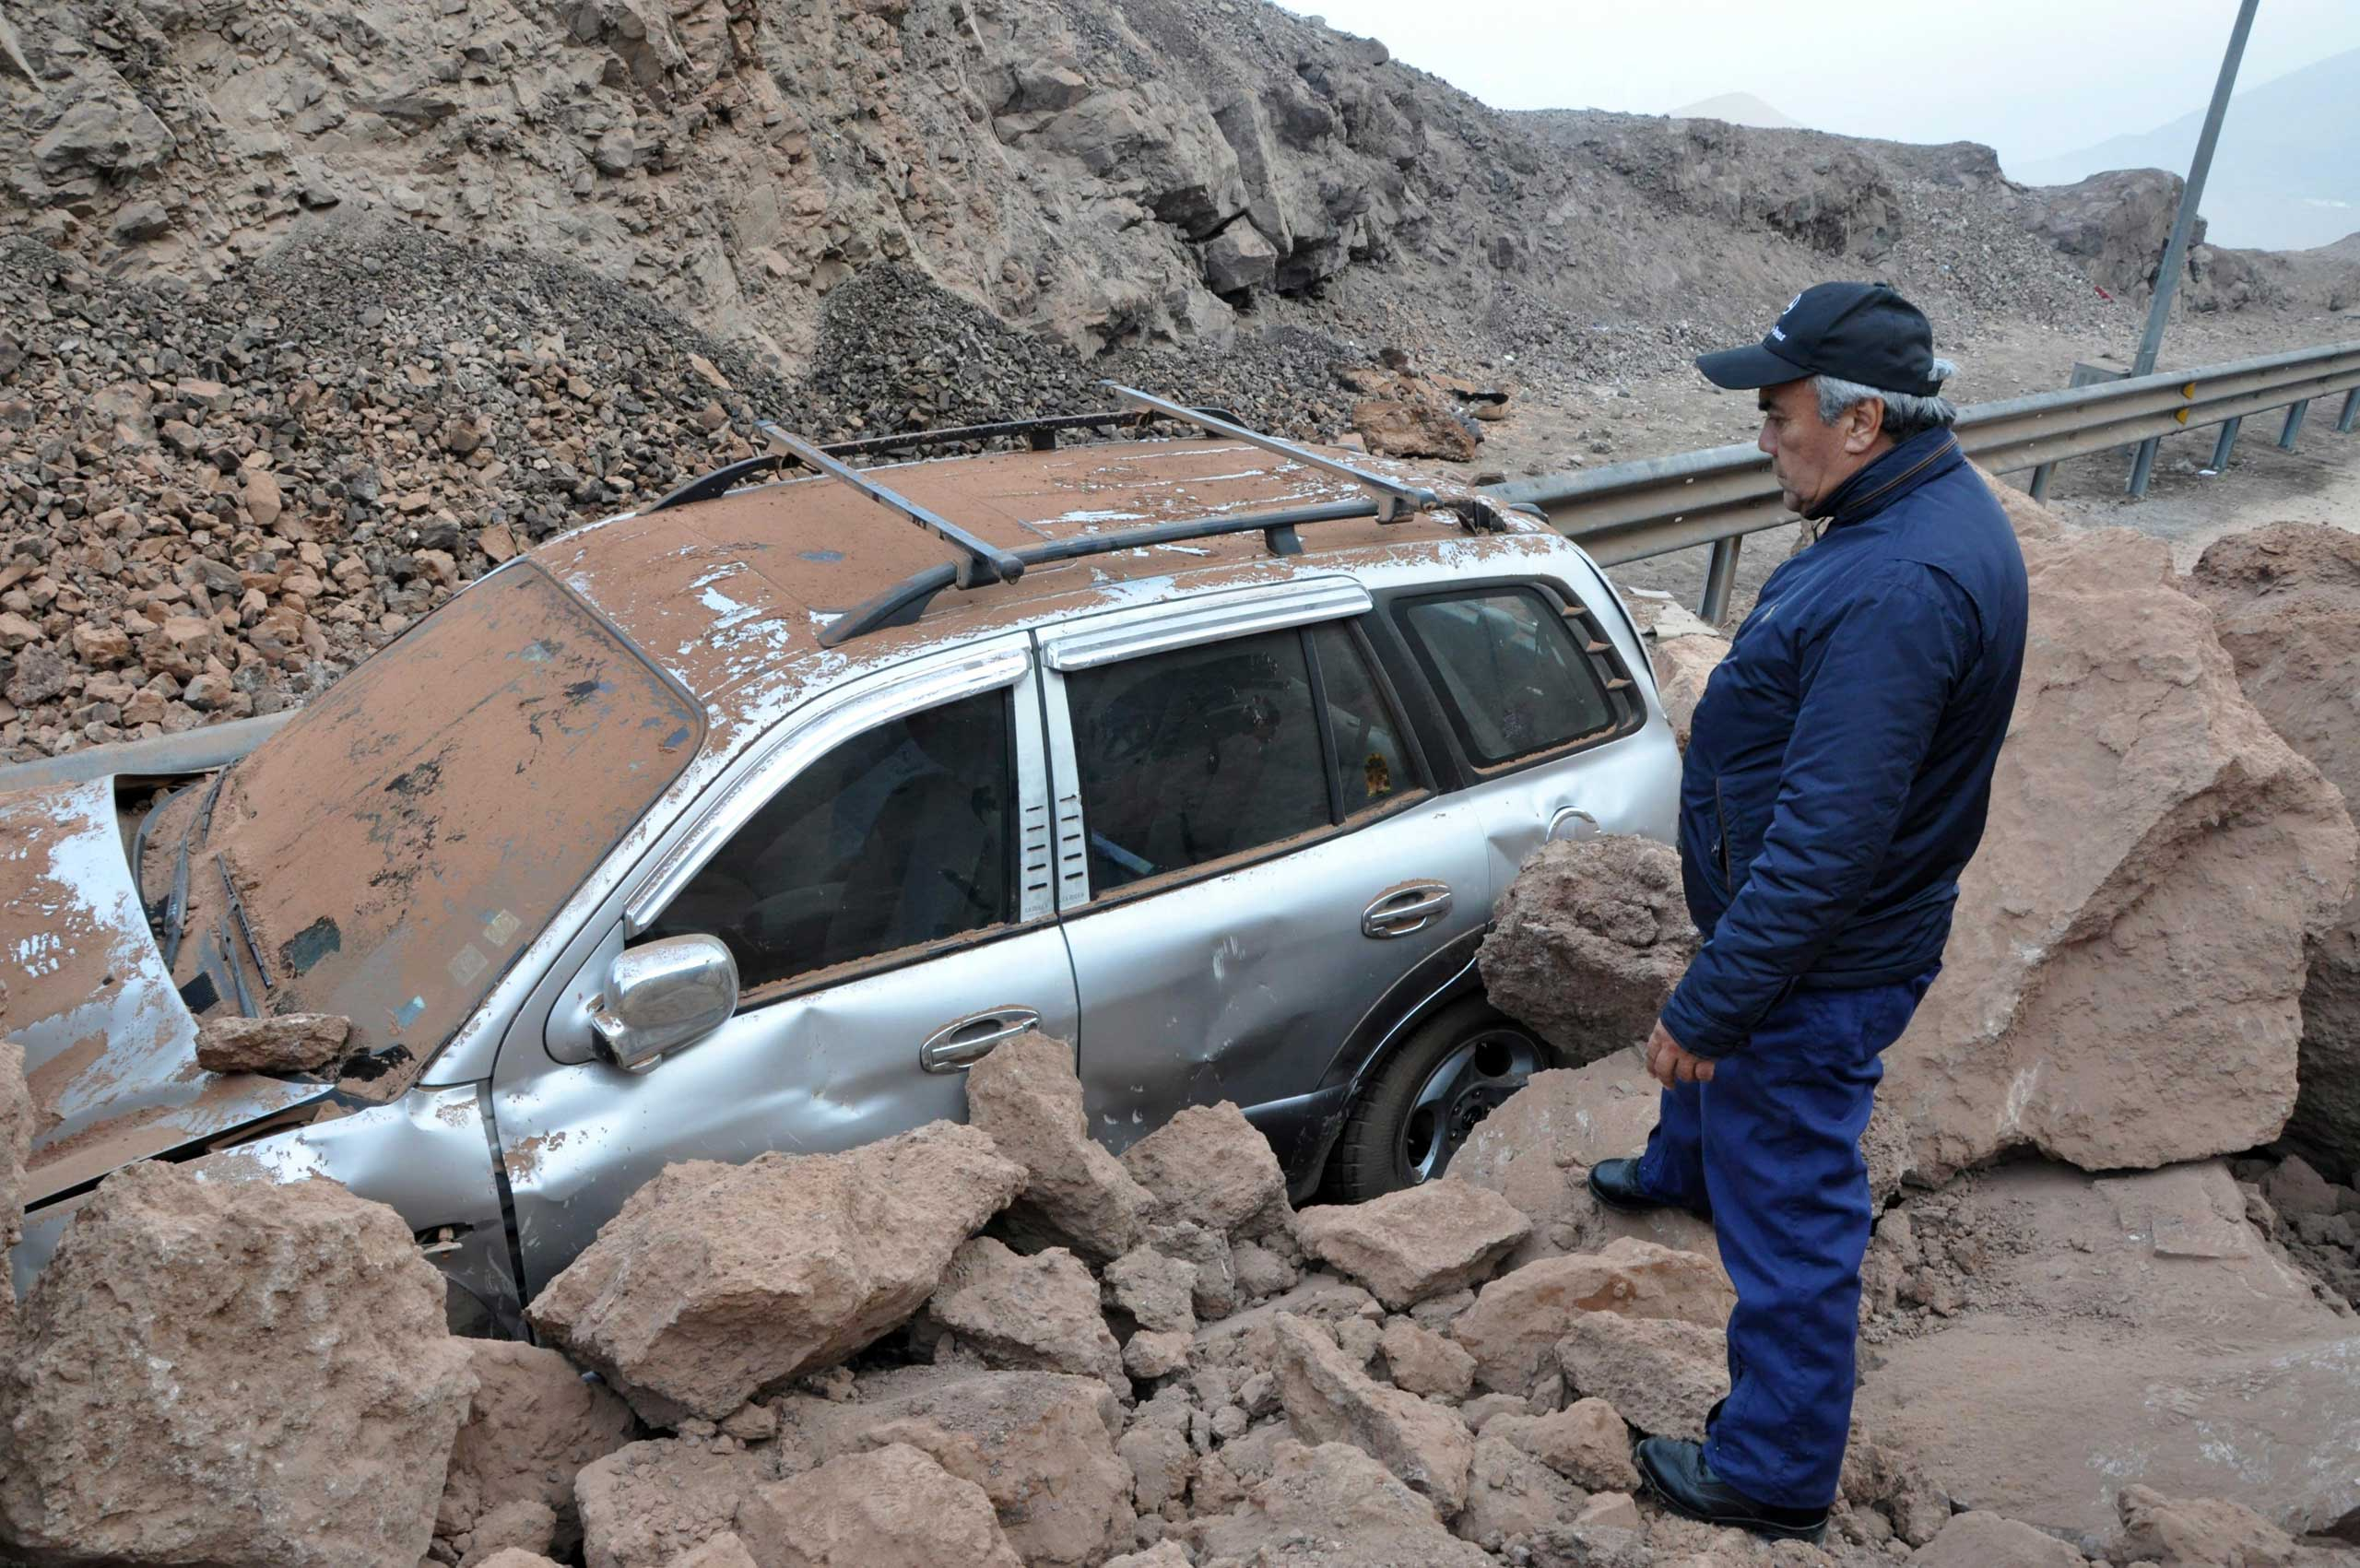 <b>Chile Earthquake</b> A rescue worker inspects a car caught under a landslide after an 8.2 magnitude earthquake and tsunami hit the northern port of Iquique, Chile on April 2, 2014.